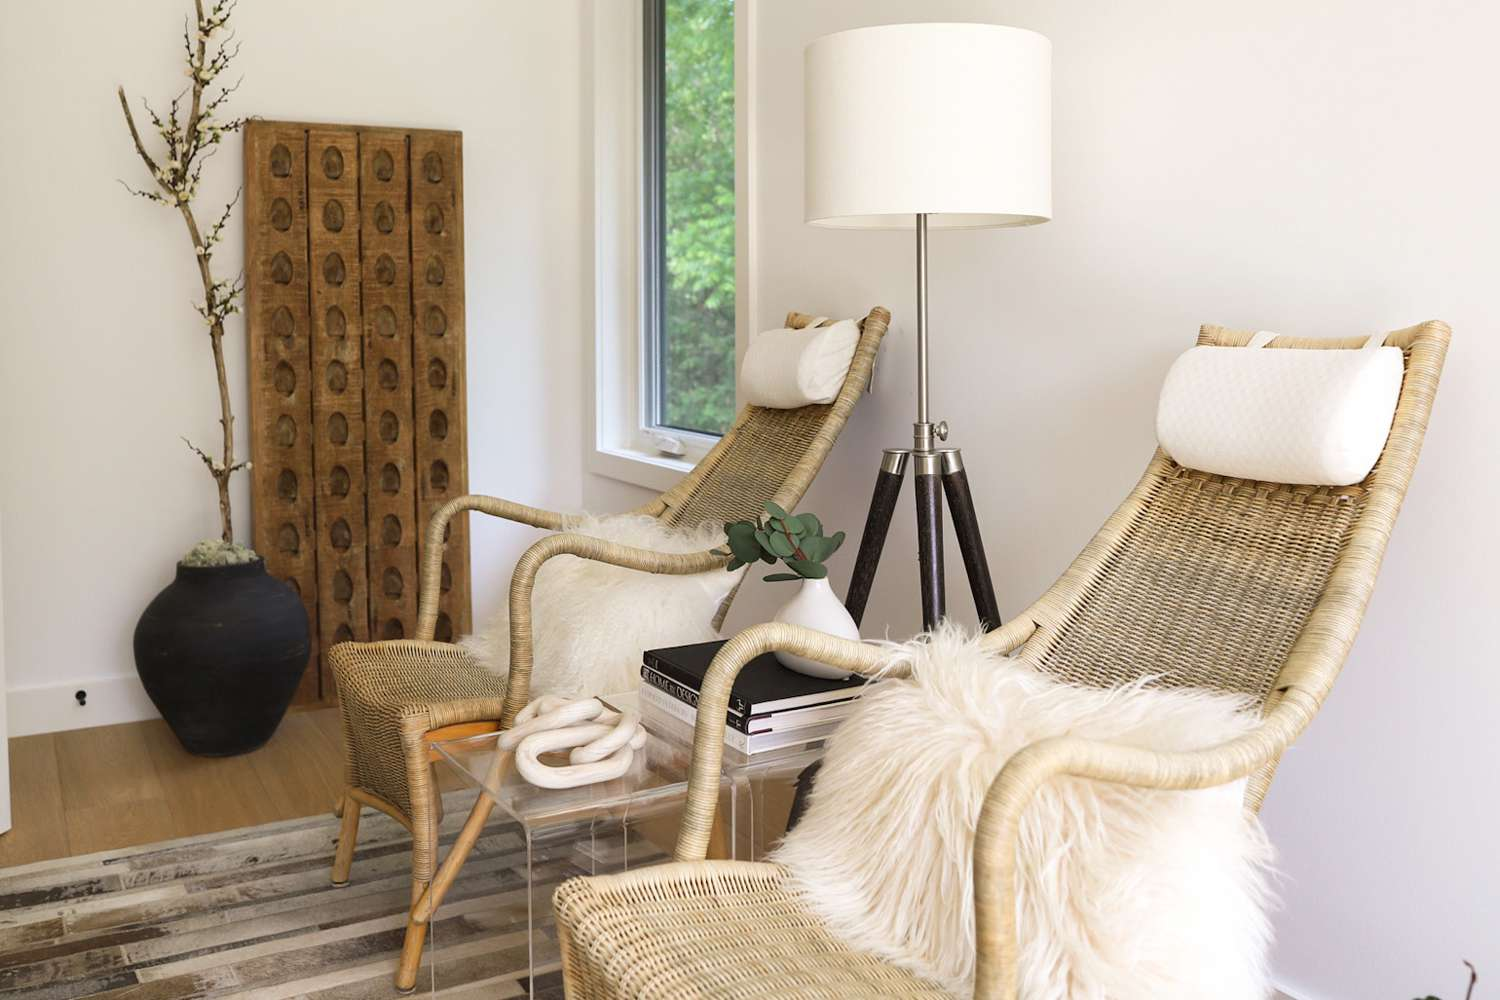 Neutral wooden chairs with faux sheepskin pillows on top next to lamp and side table with books